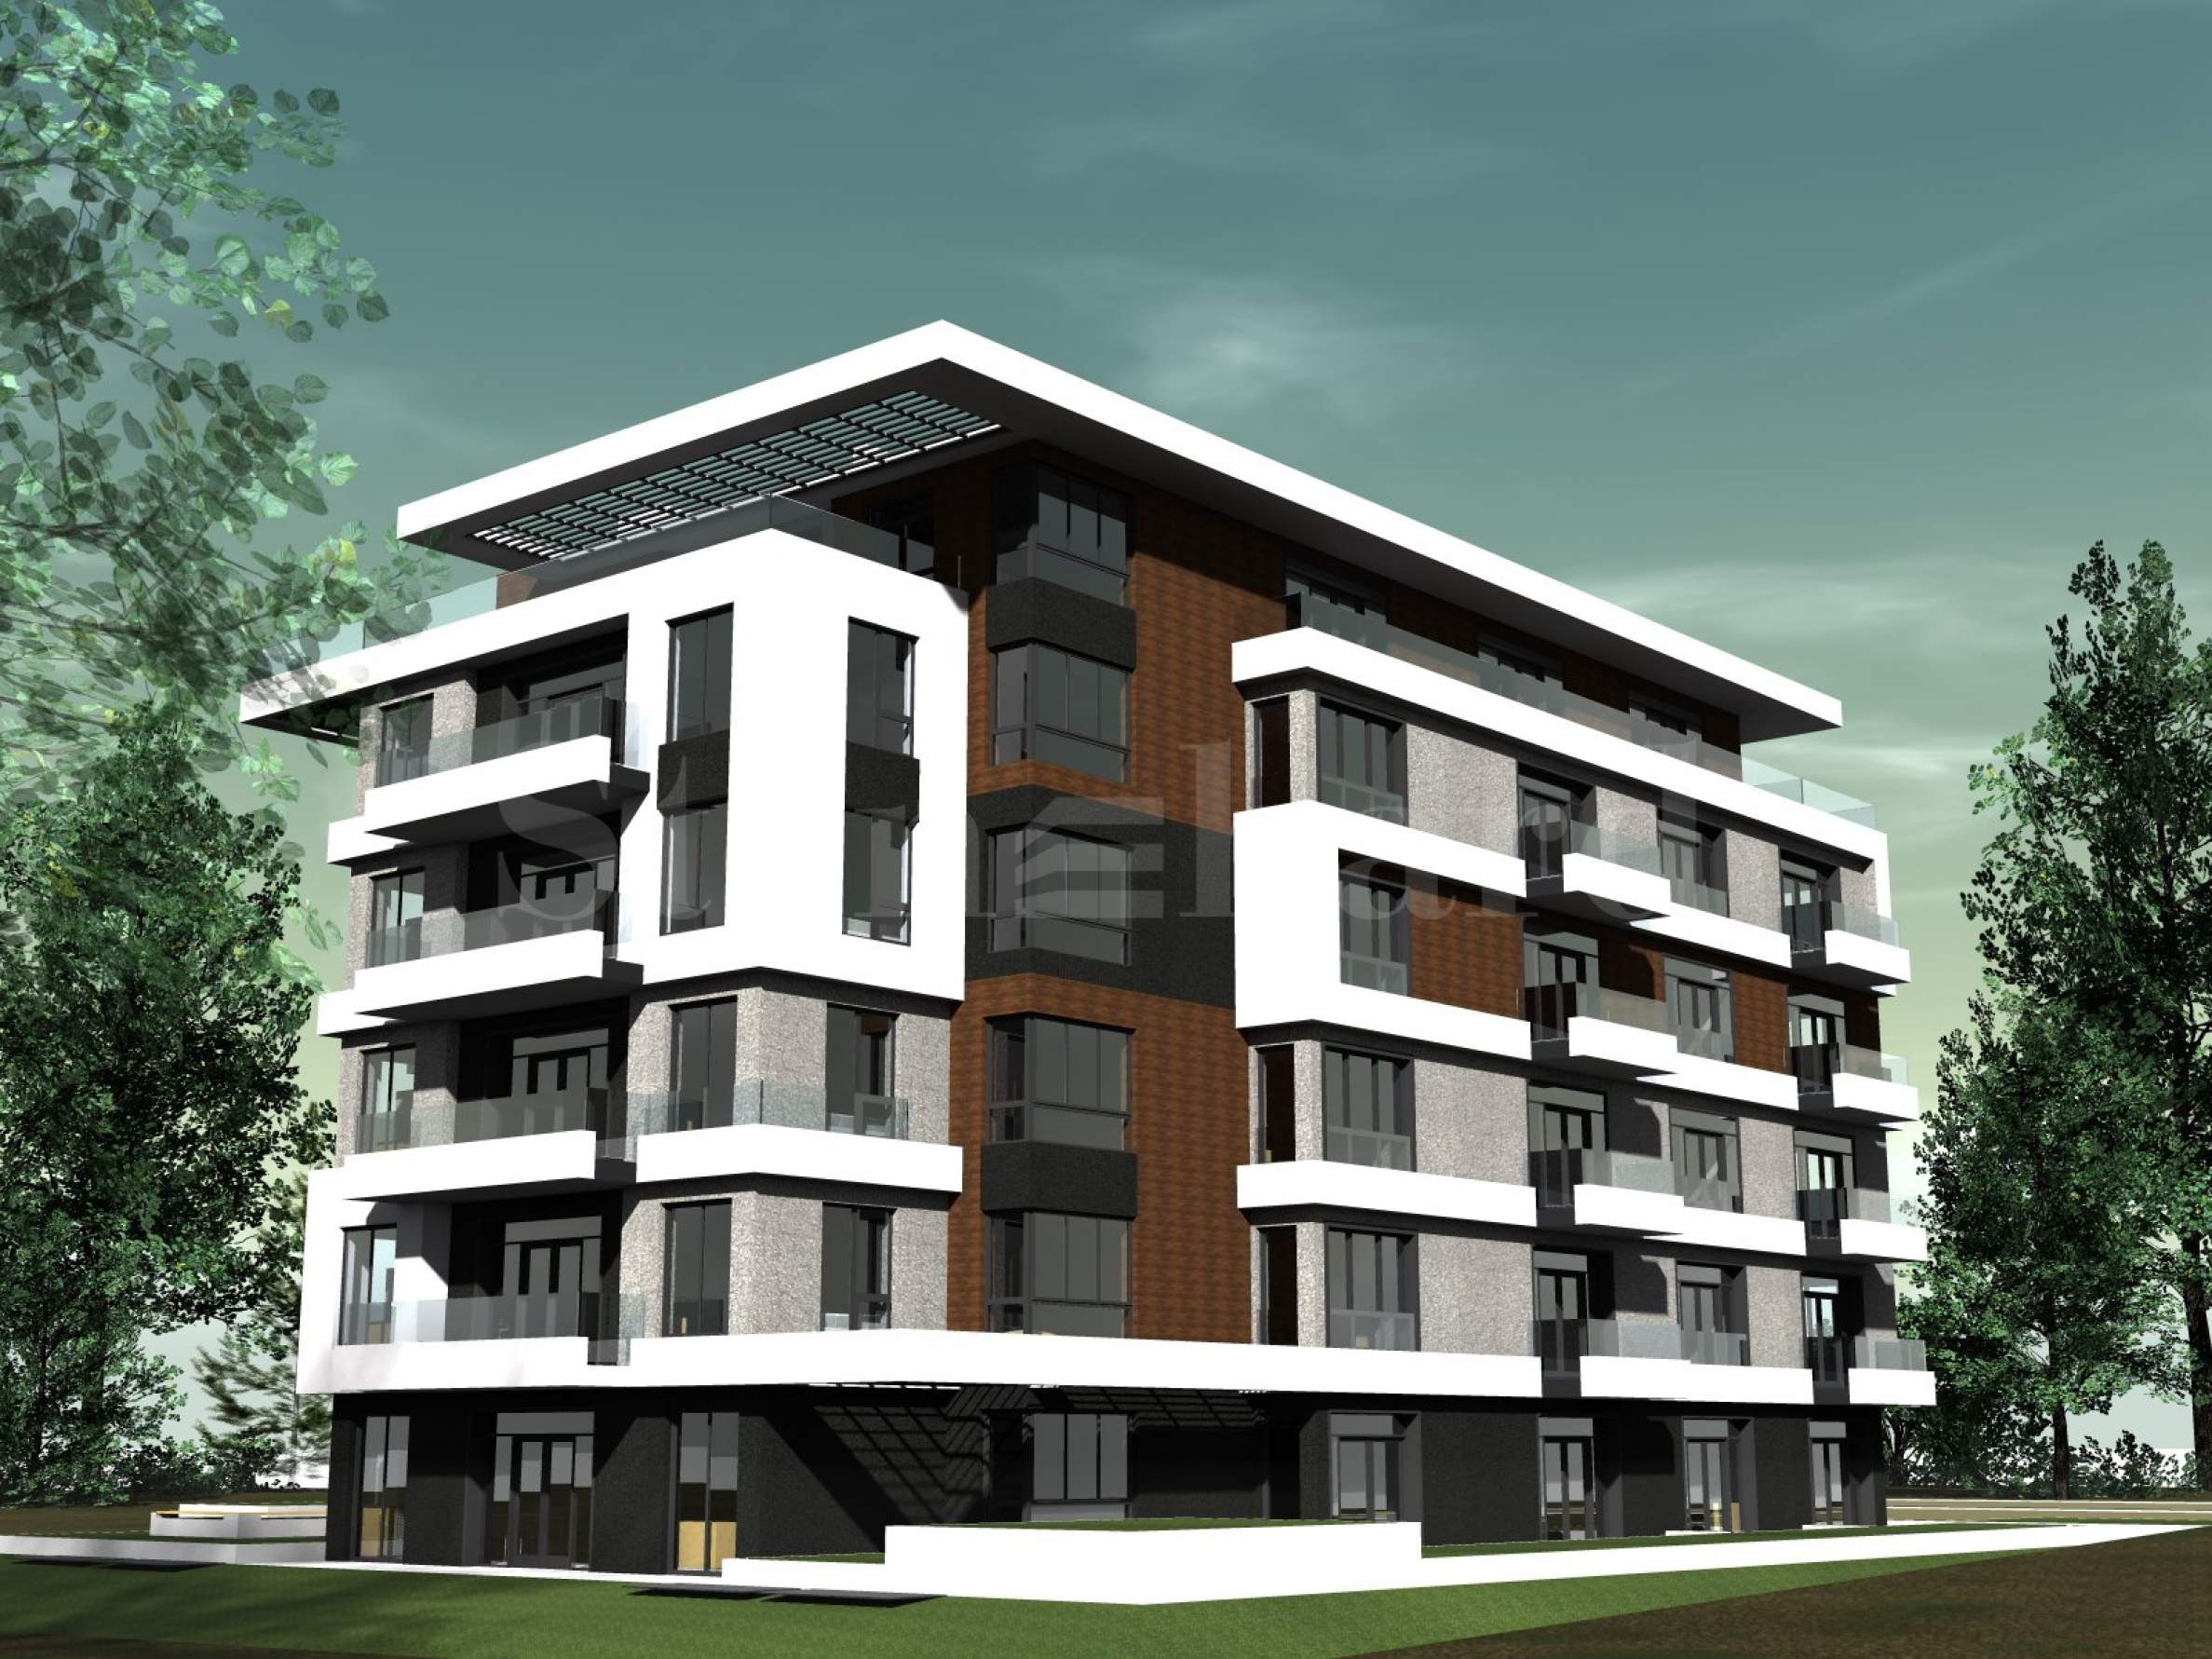 Elegant residential building with nice architecture in Dianabad District2 - Stonehard